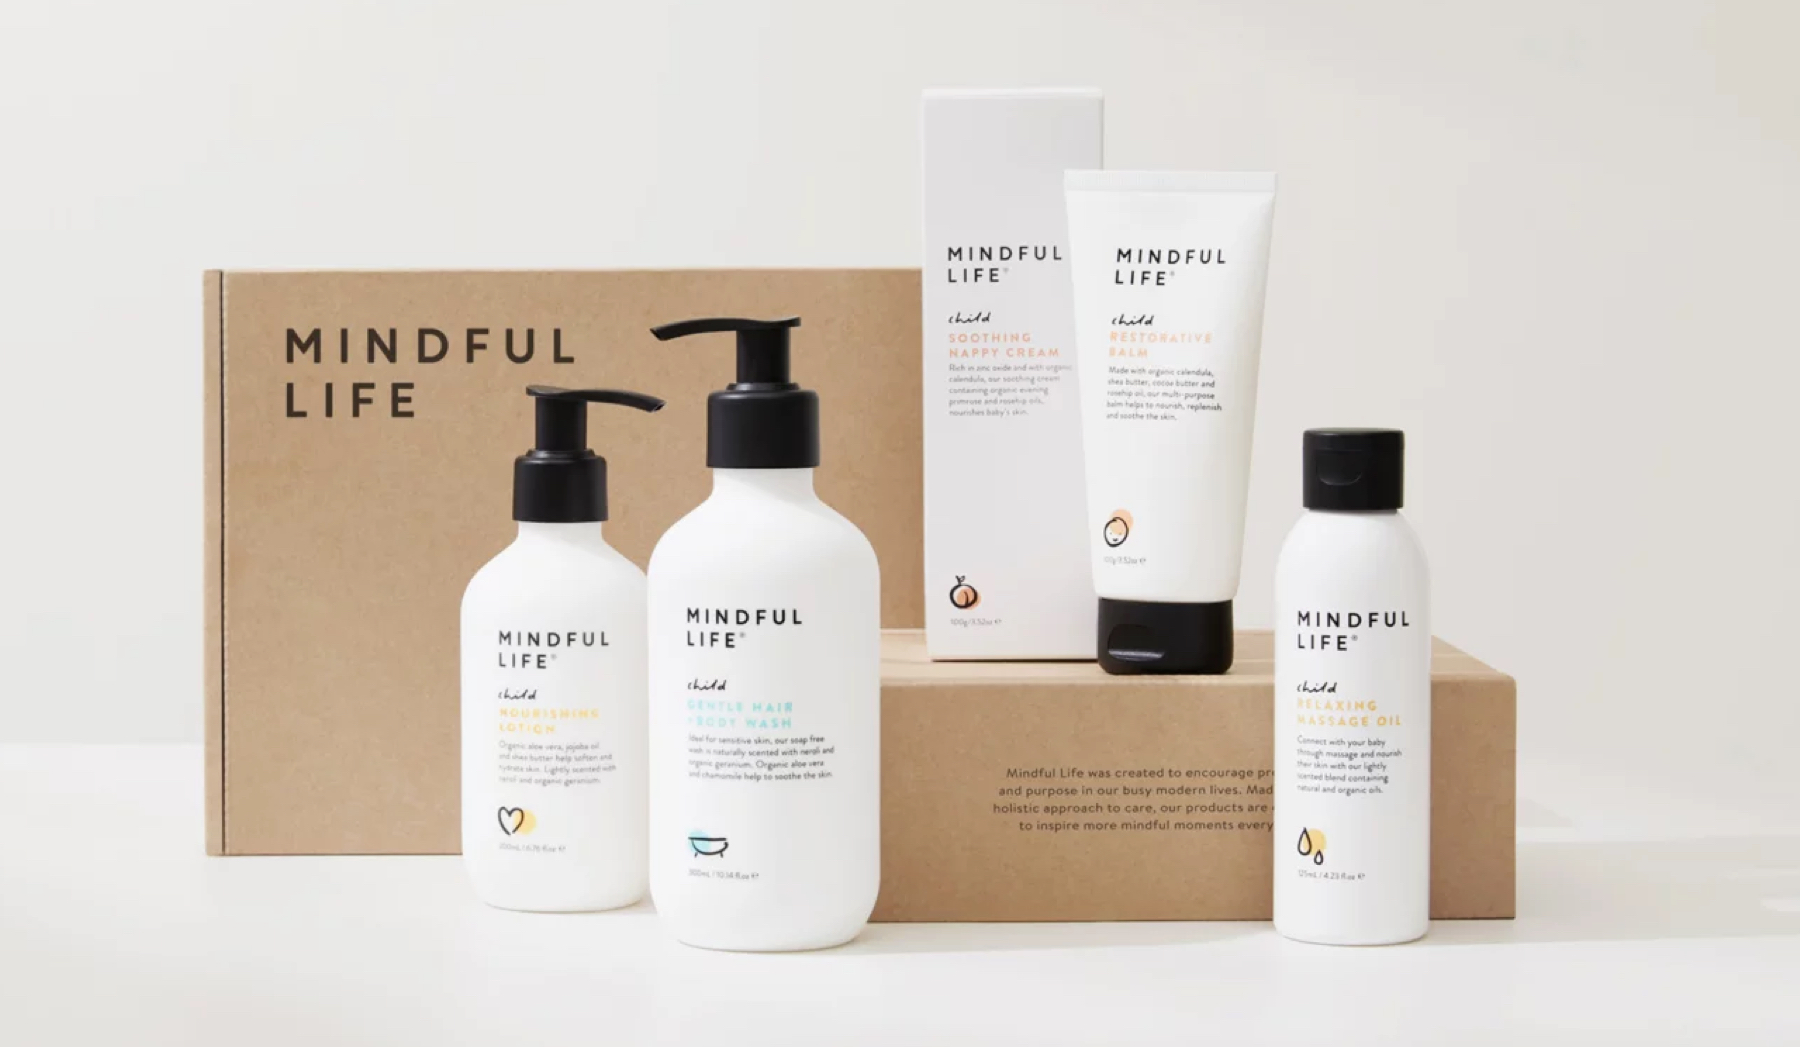 mindful life products